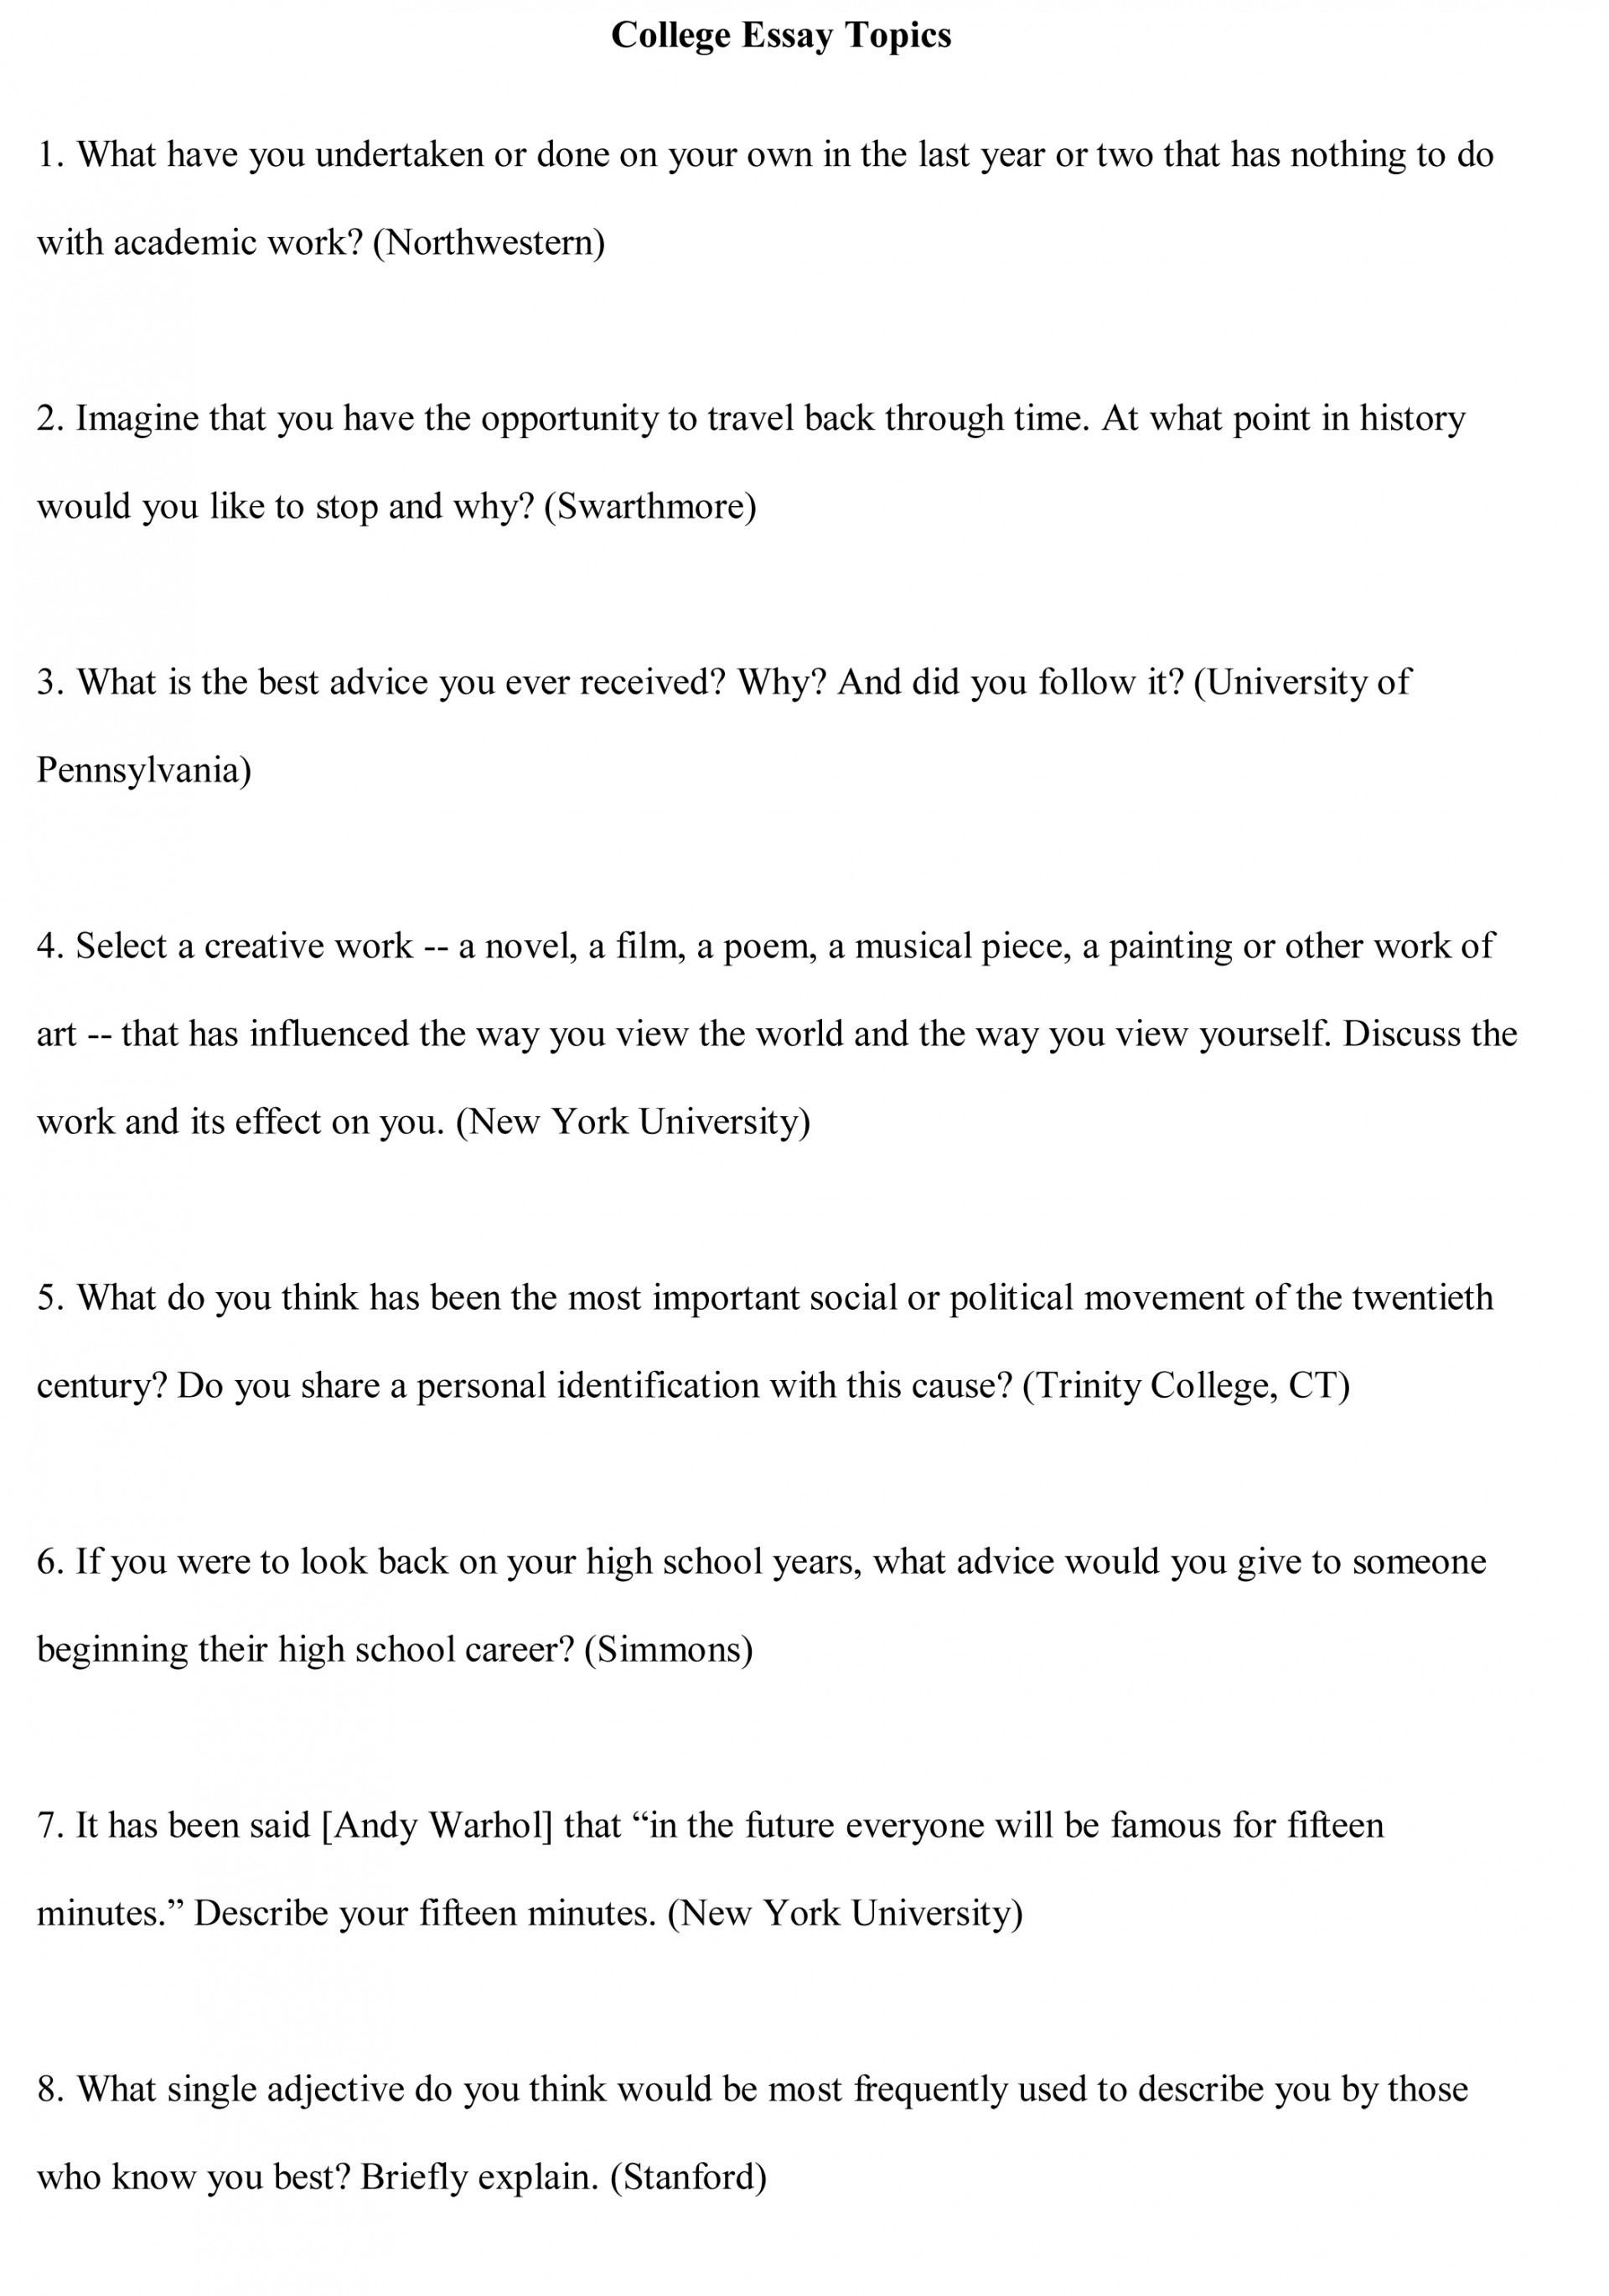 002 Topics To Write About For College Essay Example Free Stirring Essays Application 1920